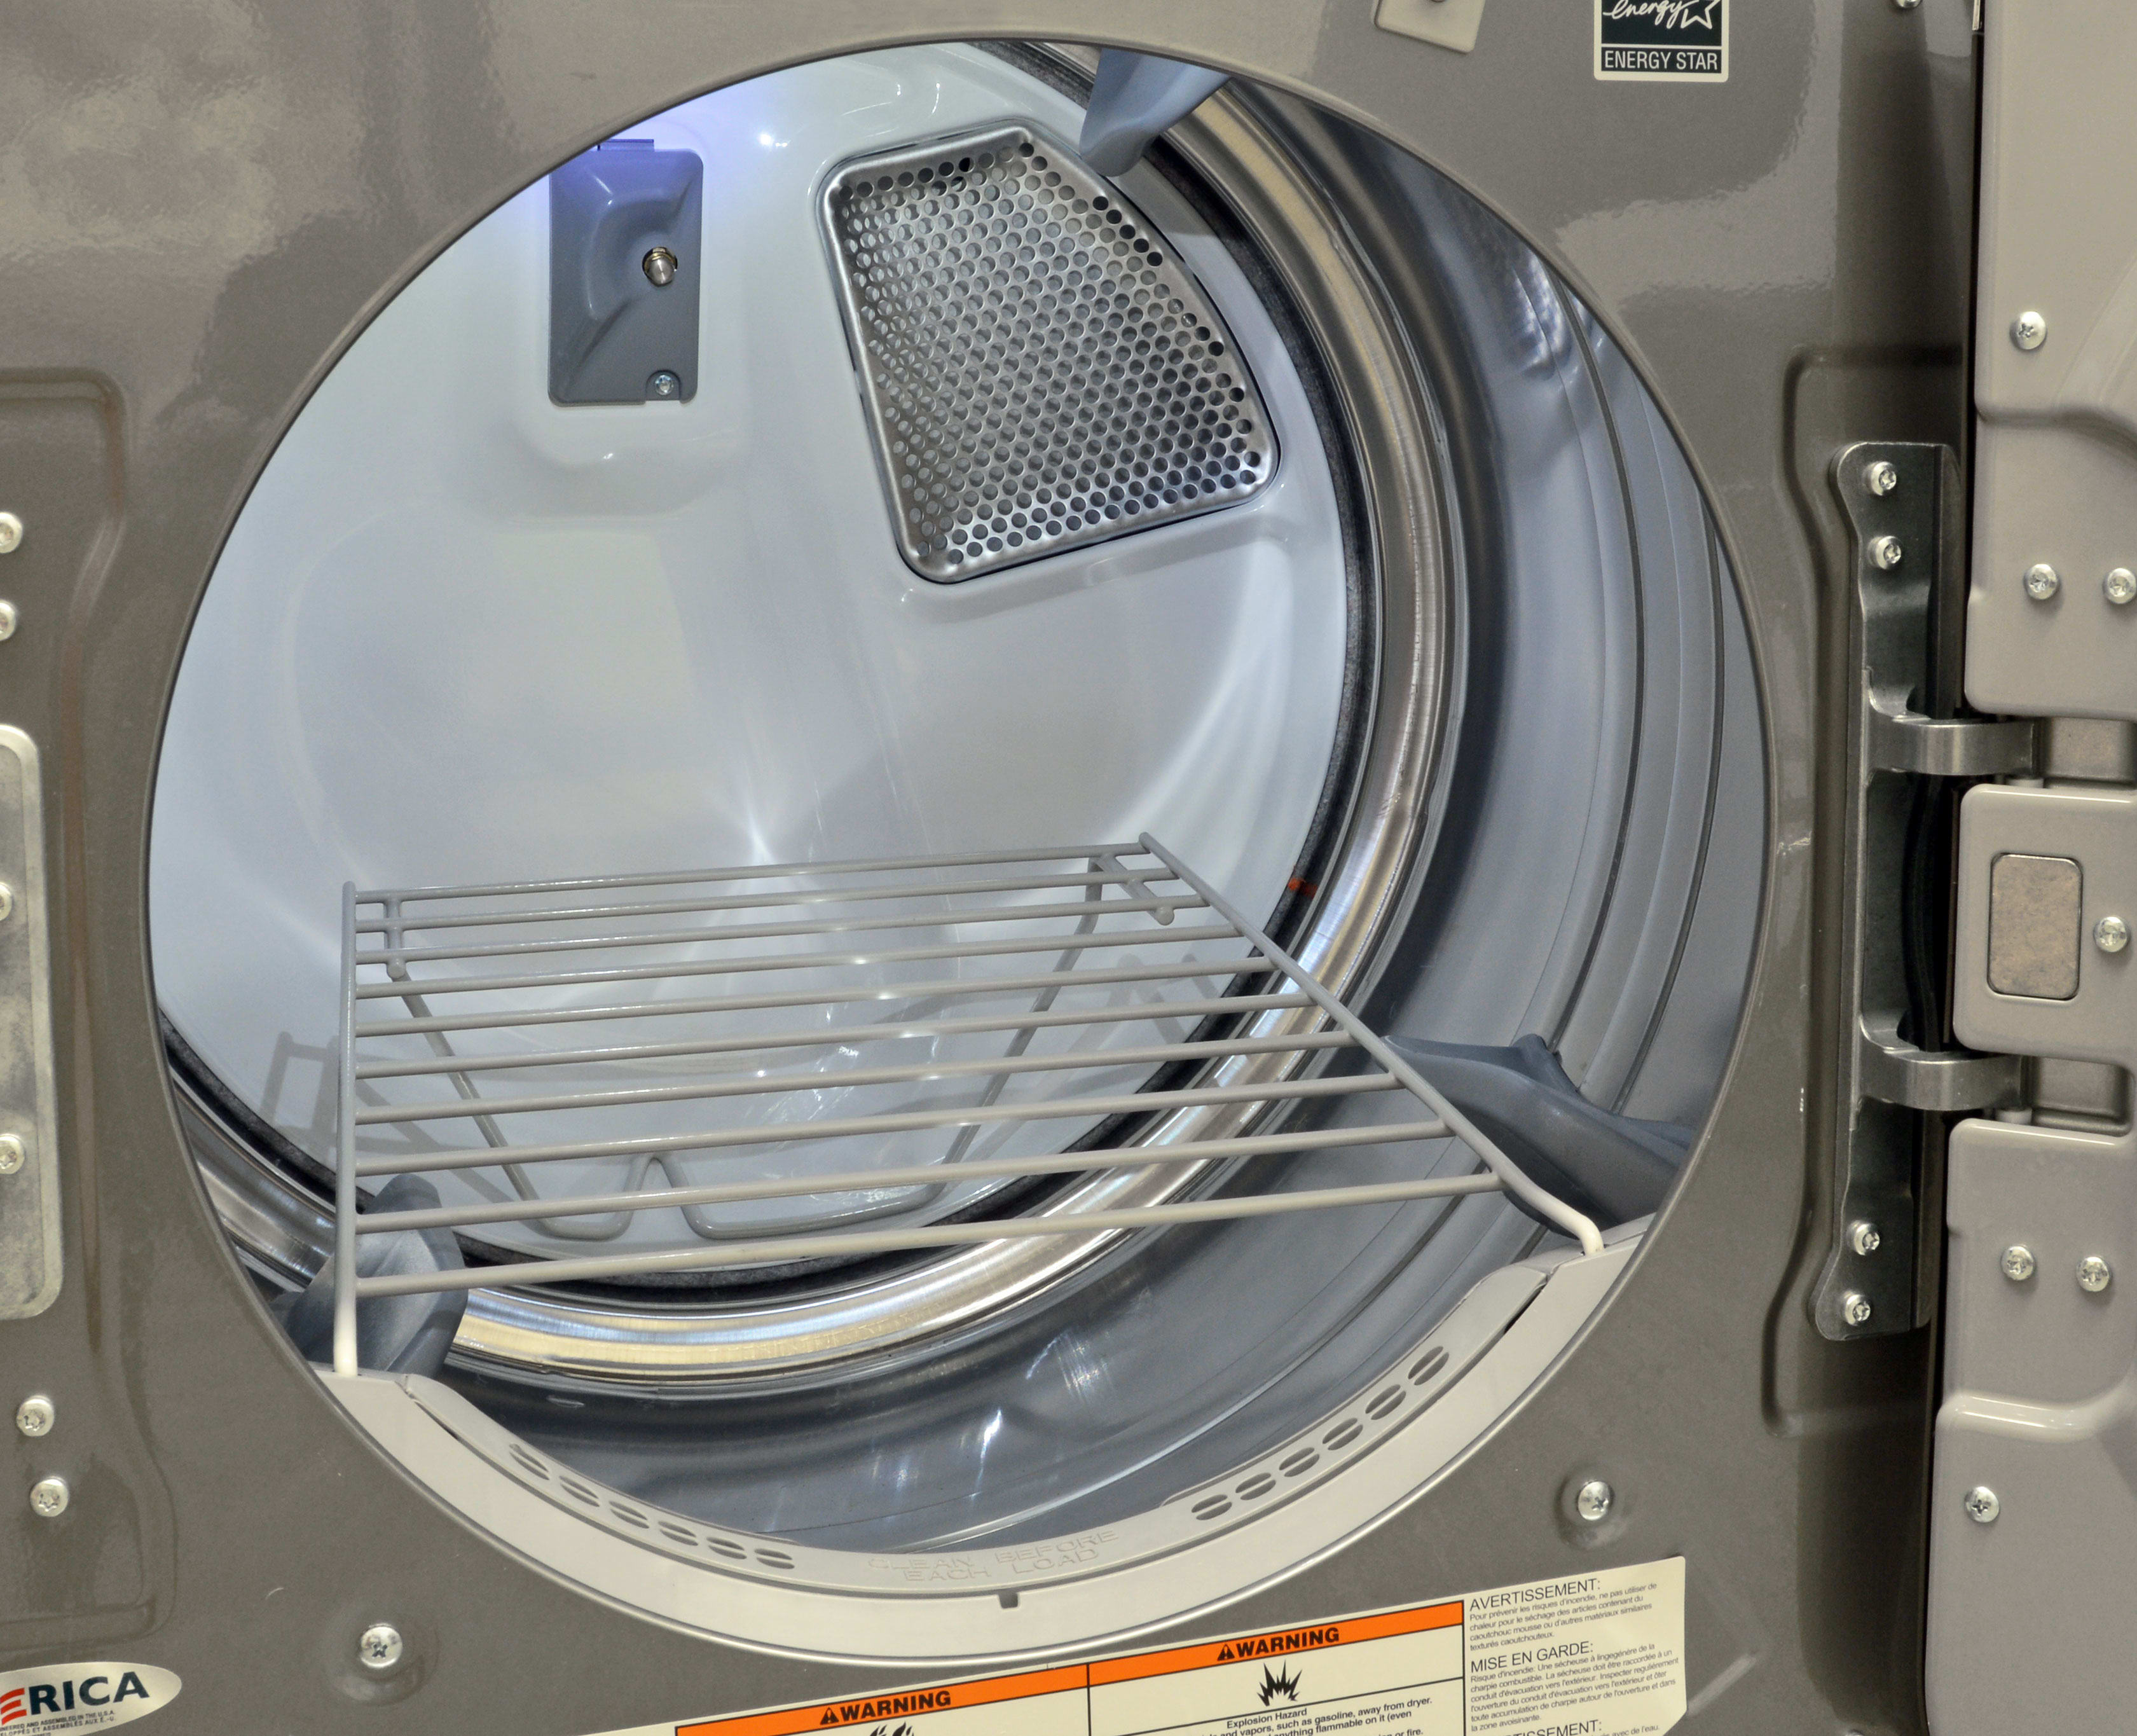 The Maytag 8200 dryers feature a stainless interior drum—always a nice touch—as well as a removable drying rack.